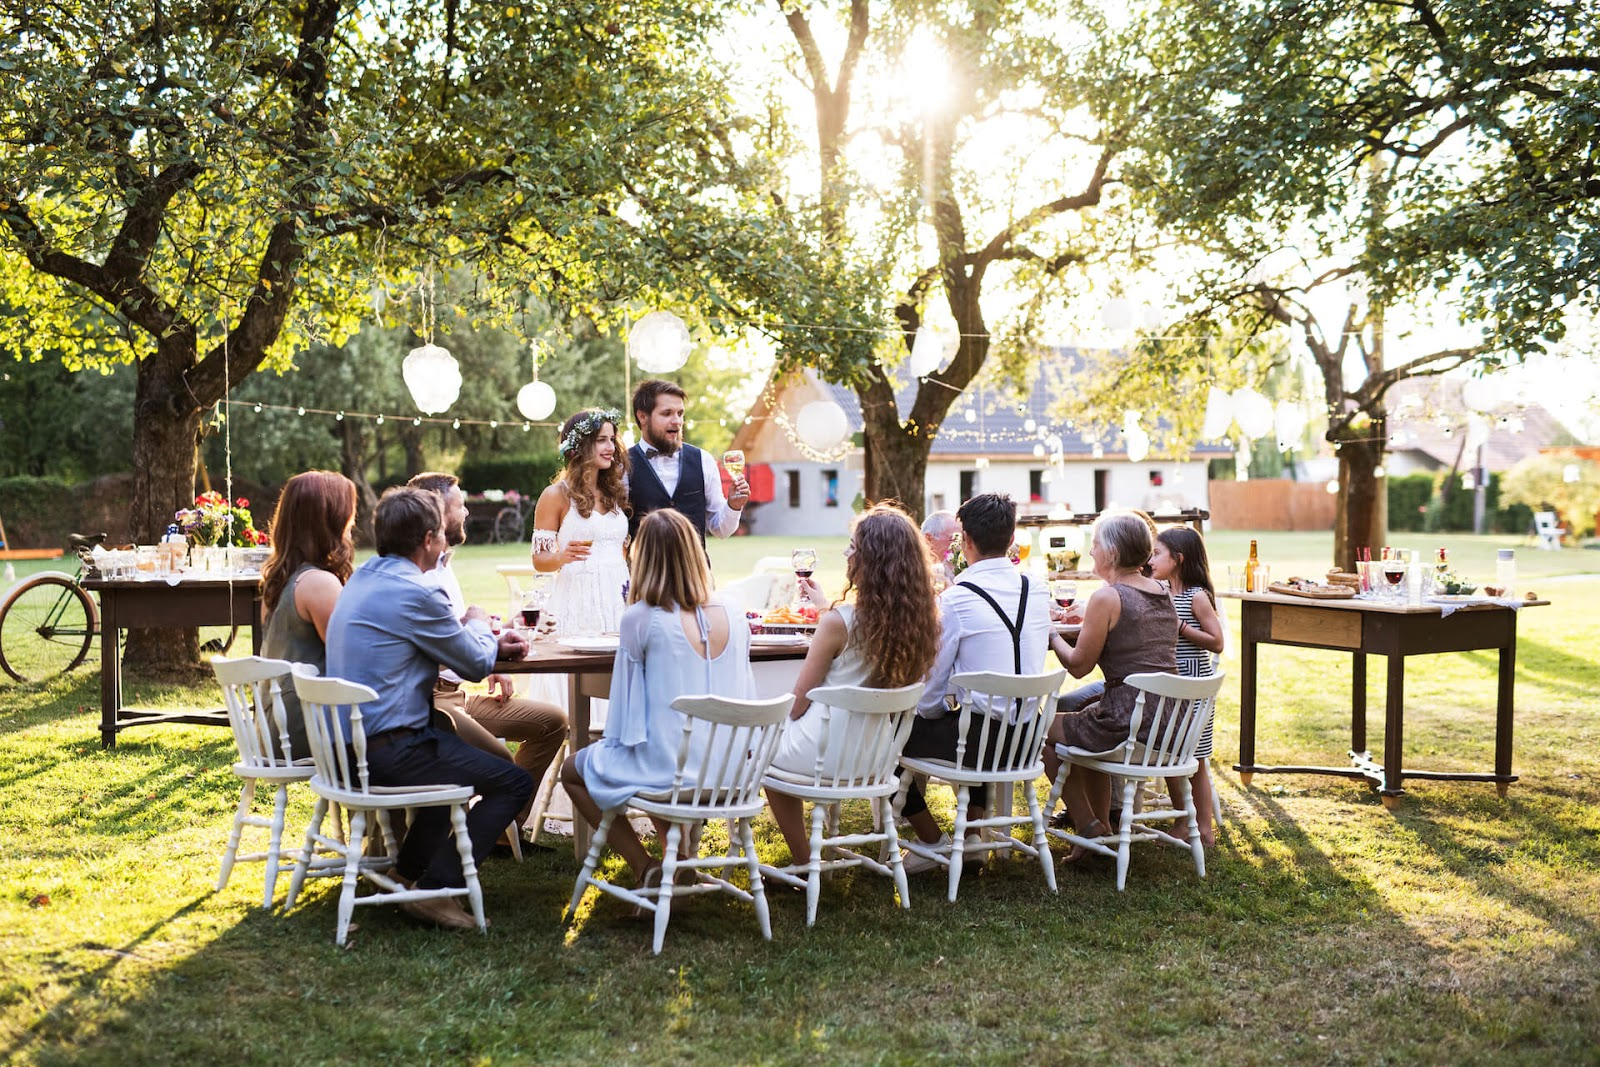 Bride and groom in a beautiful outdoor wedding around the table with their guests